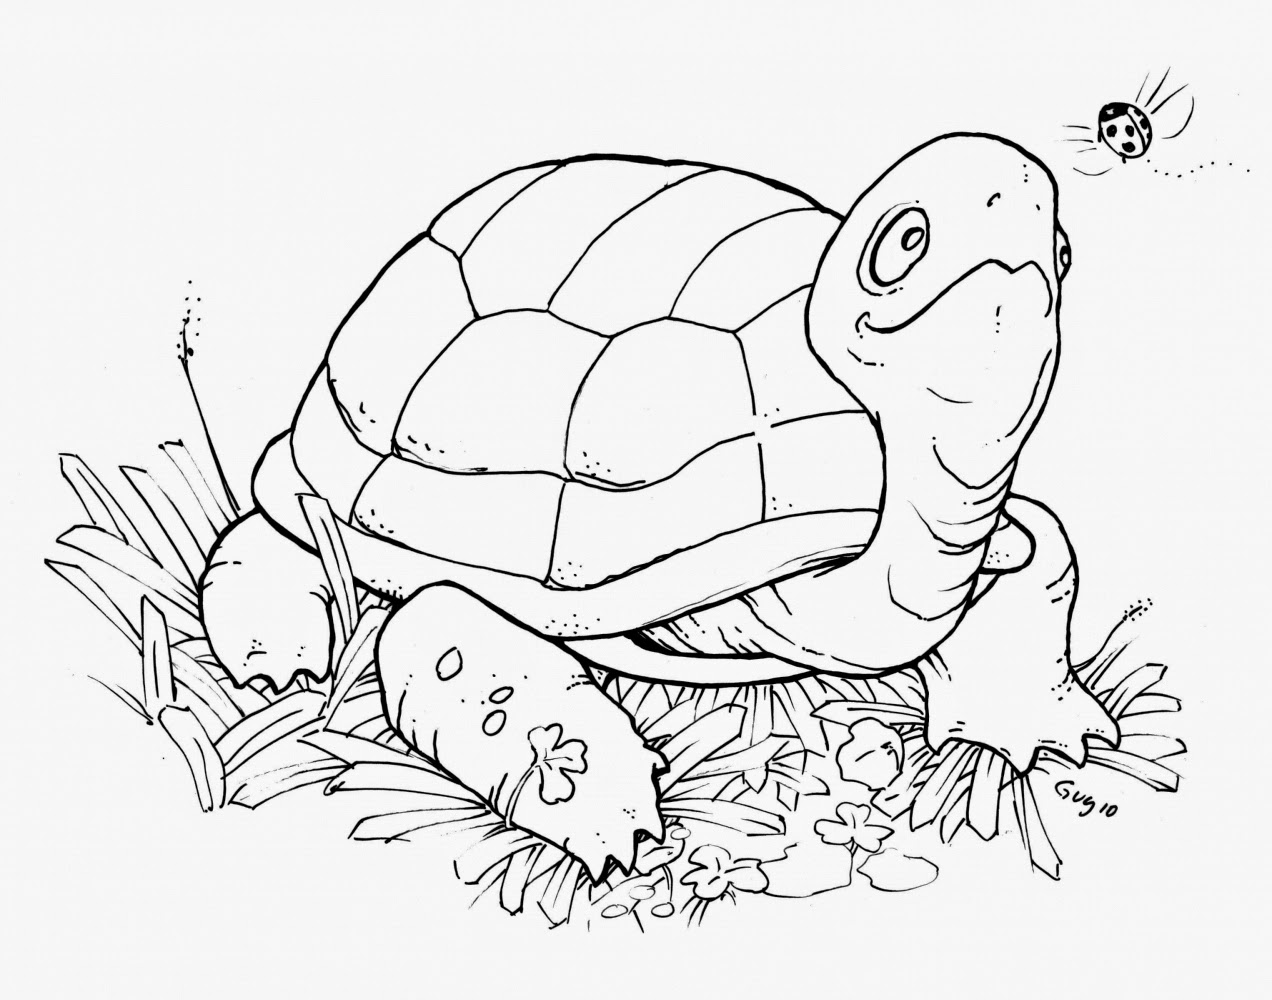 coloring pages of turtle turtle coloring pages for kids and adults 101 coloring coloring turtle pages of